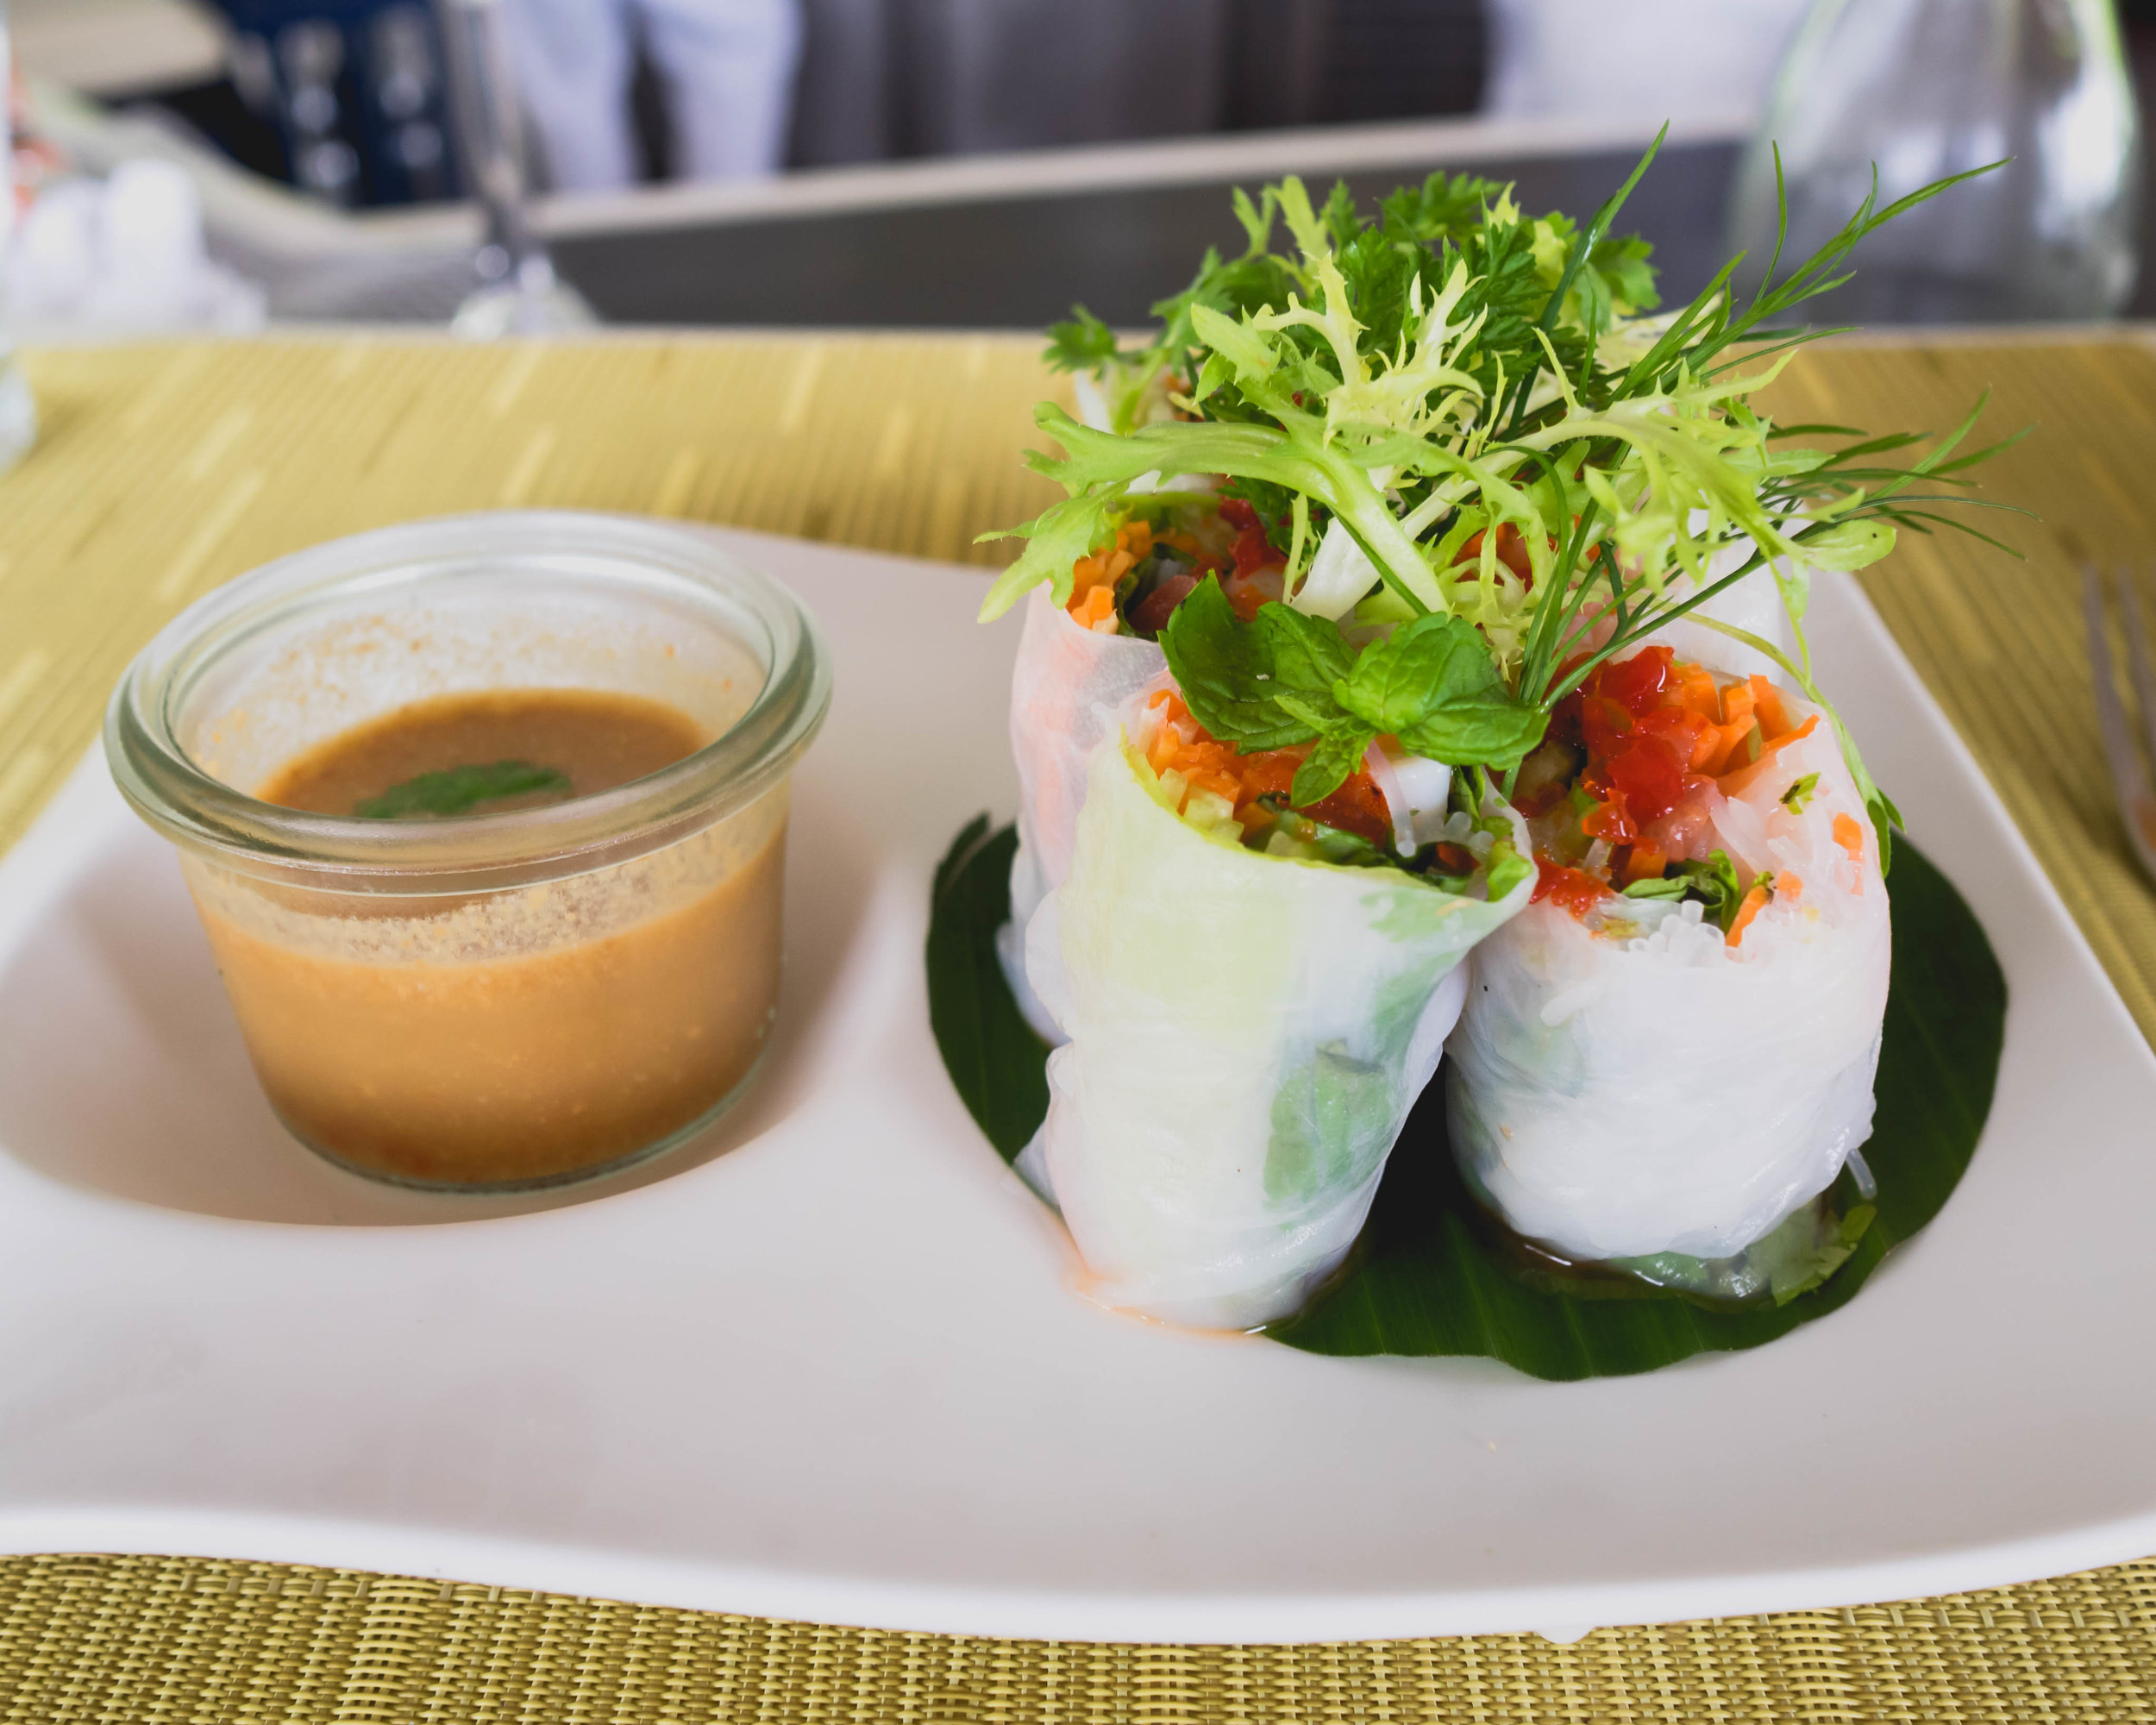 veli bar's  vietnamese prawn rice paper rolls  with indian ocean prawn, bean sprouts, lettuce, rice noodles, carrots, mint, spicy peanut dip.